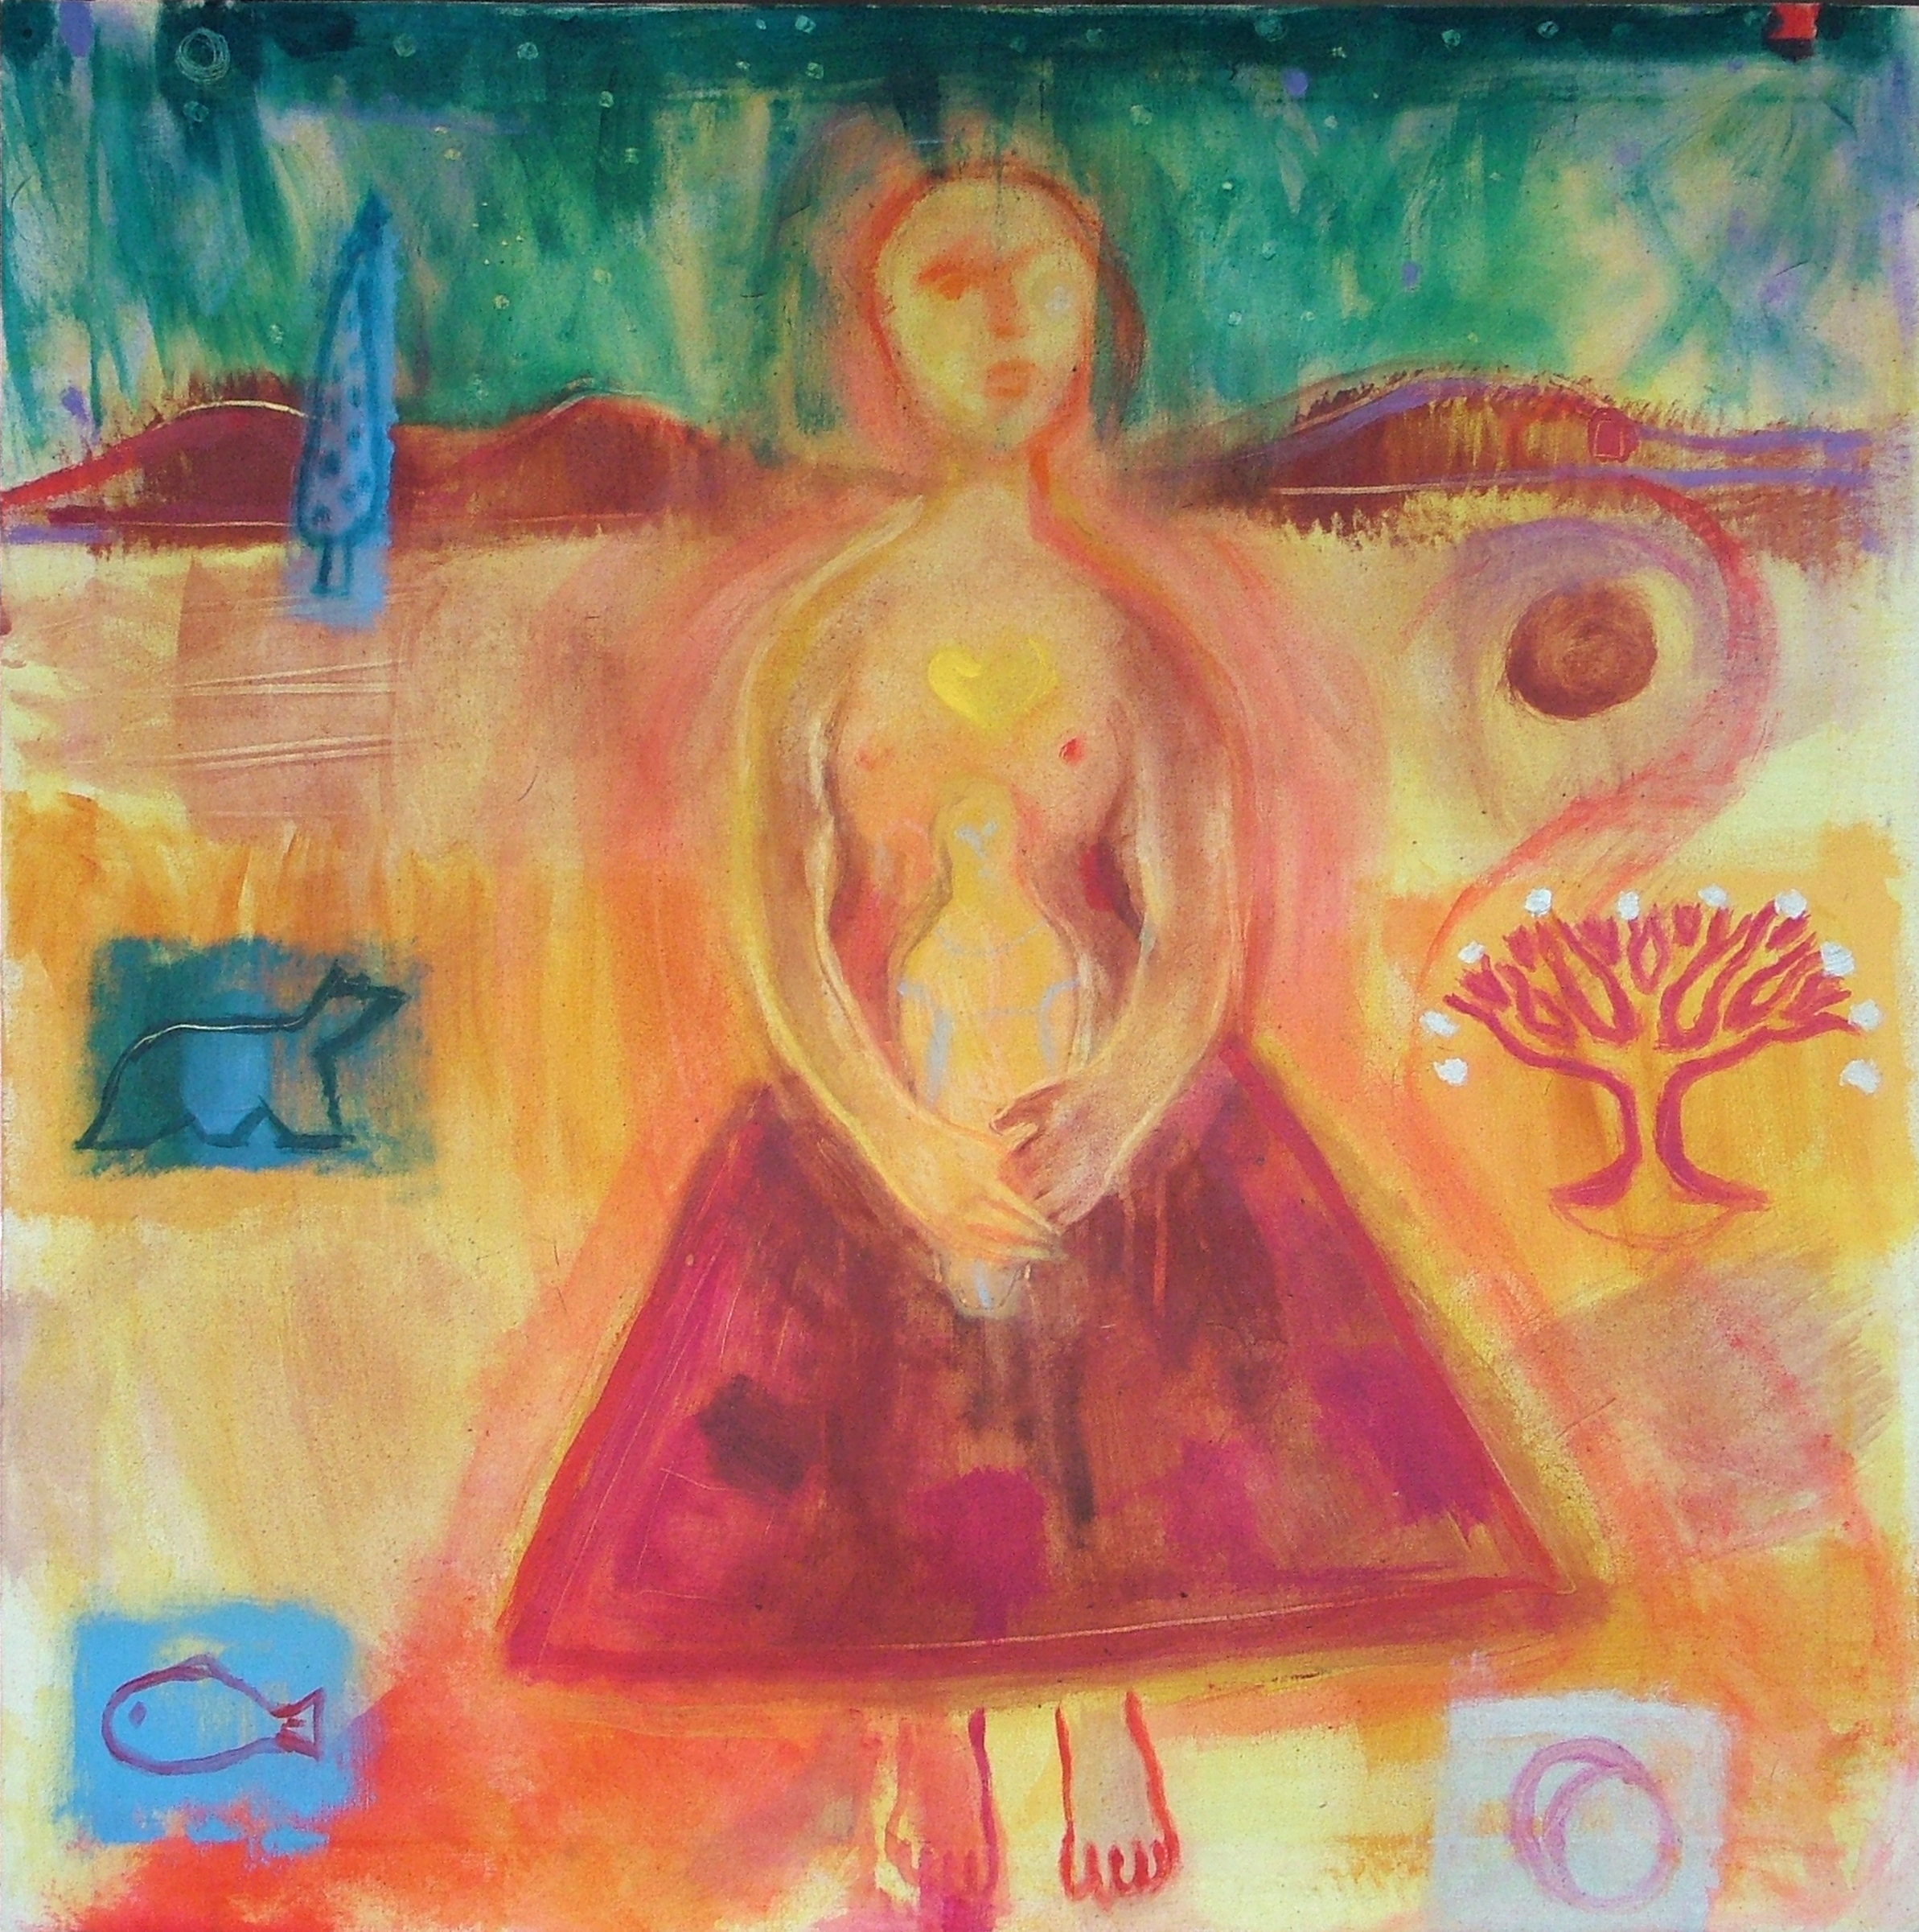 Heartsong - 1995 - Acrylic on Canvas - 92 X 92 cm,- Sold